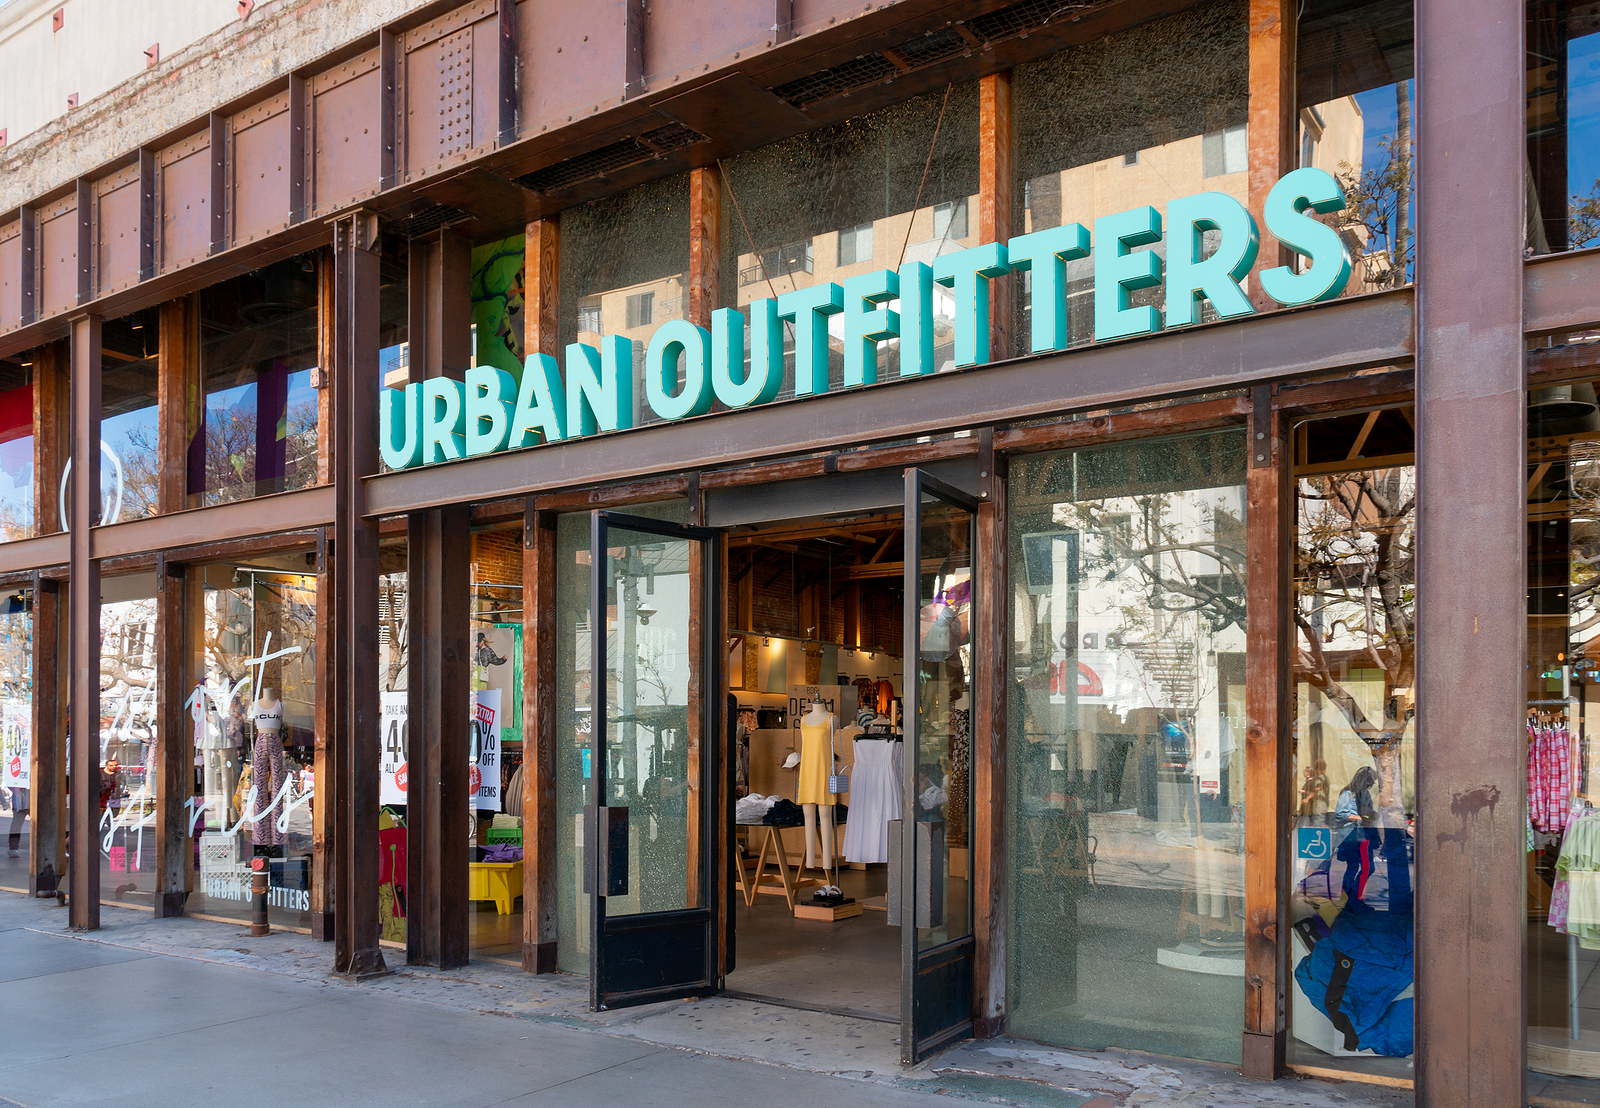 Urban Outfitters URBN stock news and analysis